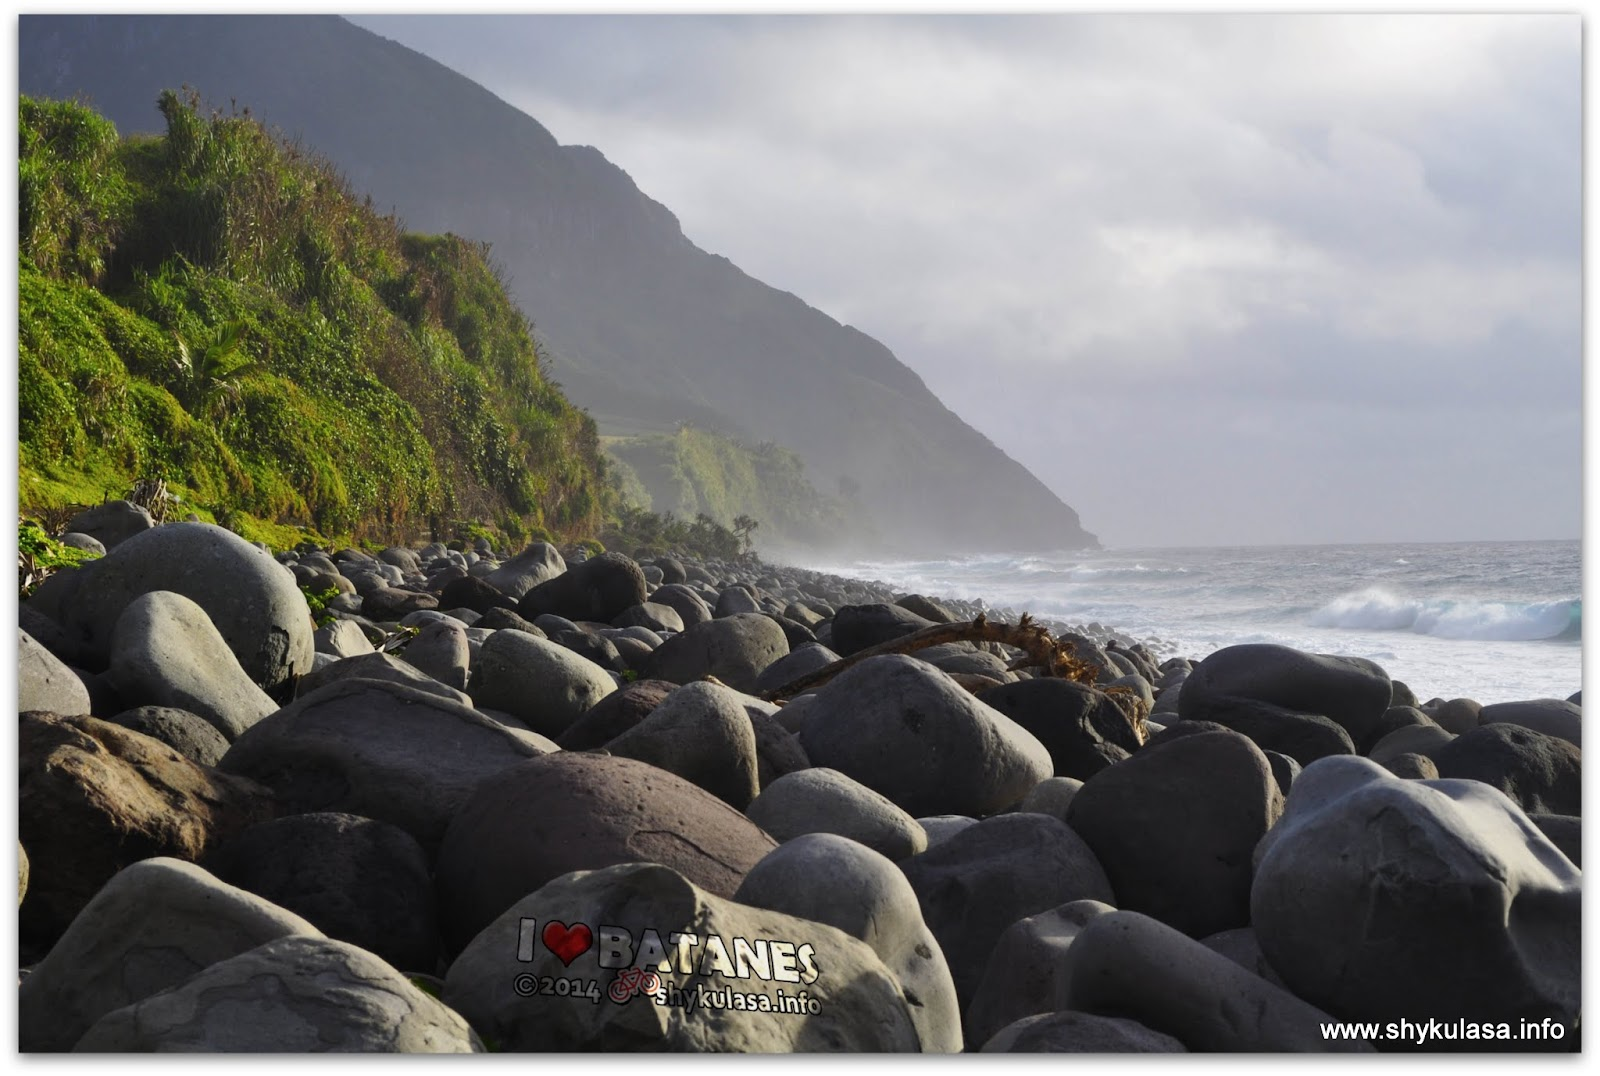 Valugan Boulder Beach, Batanes